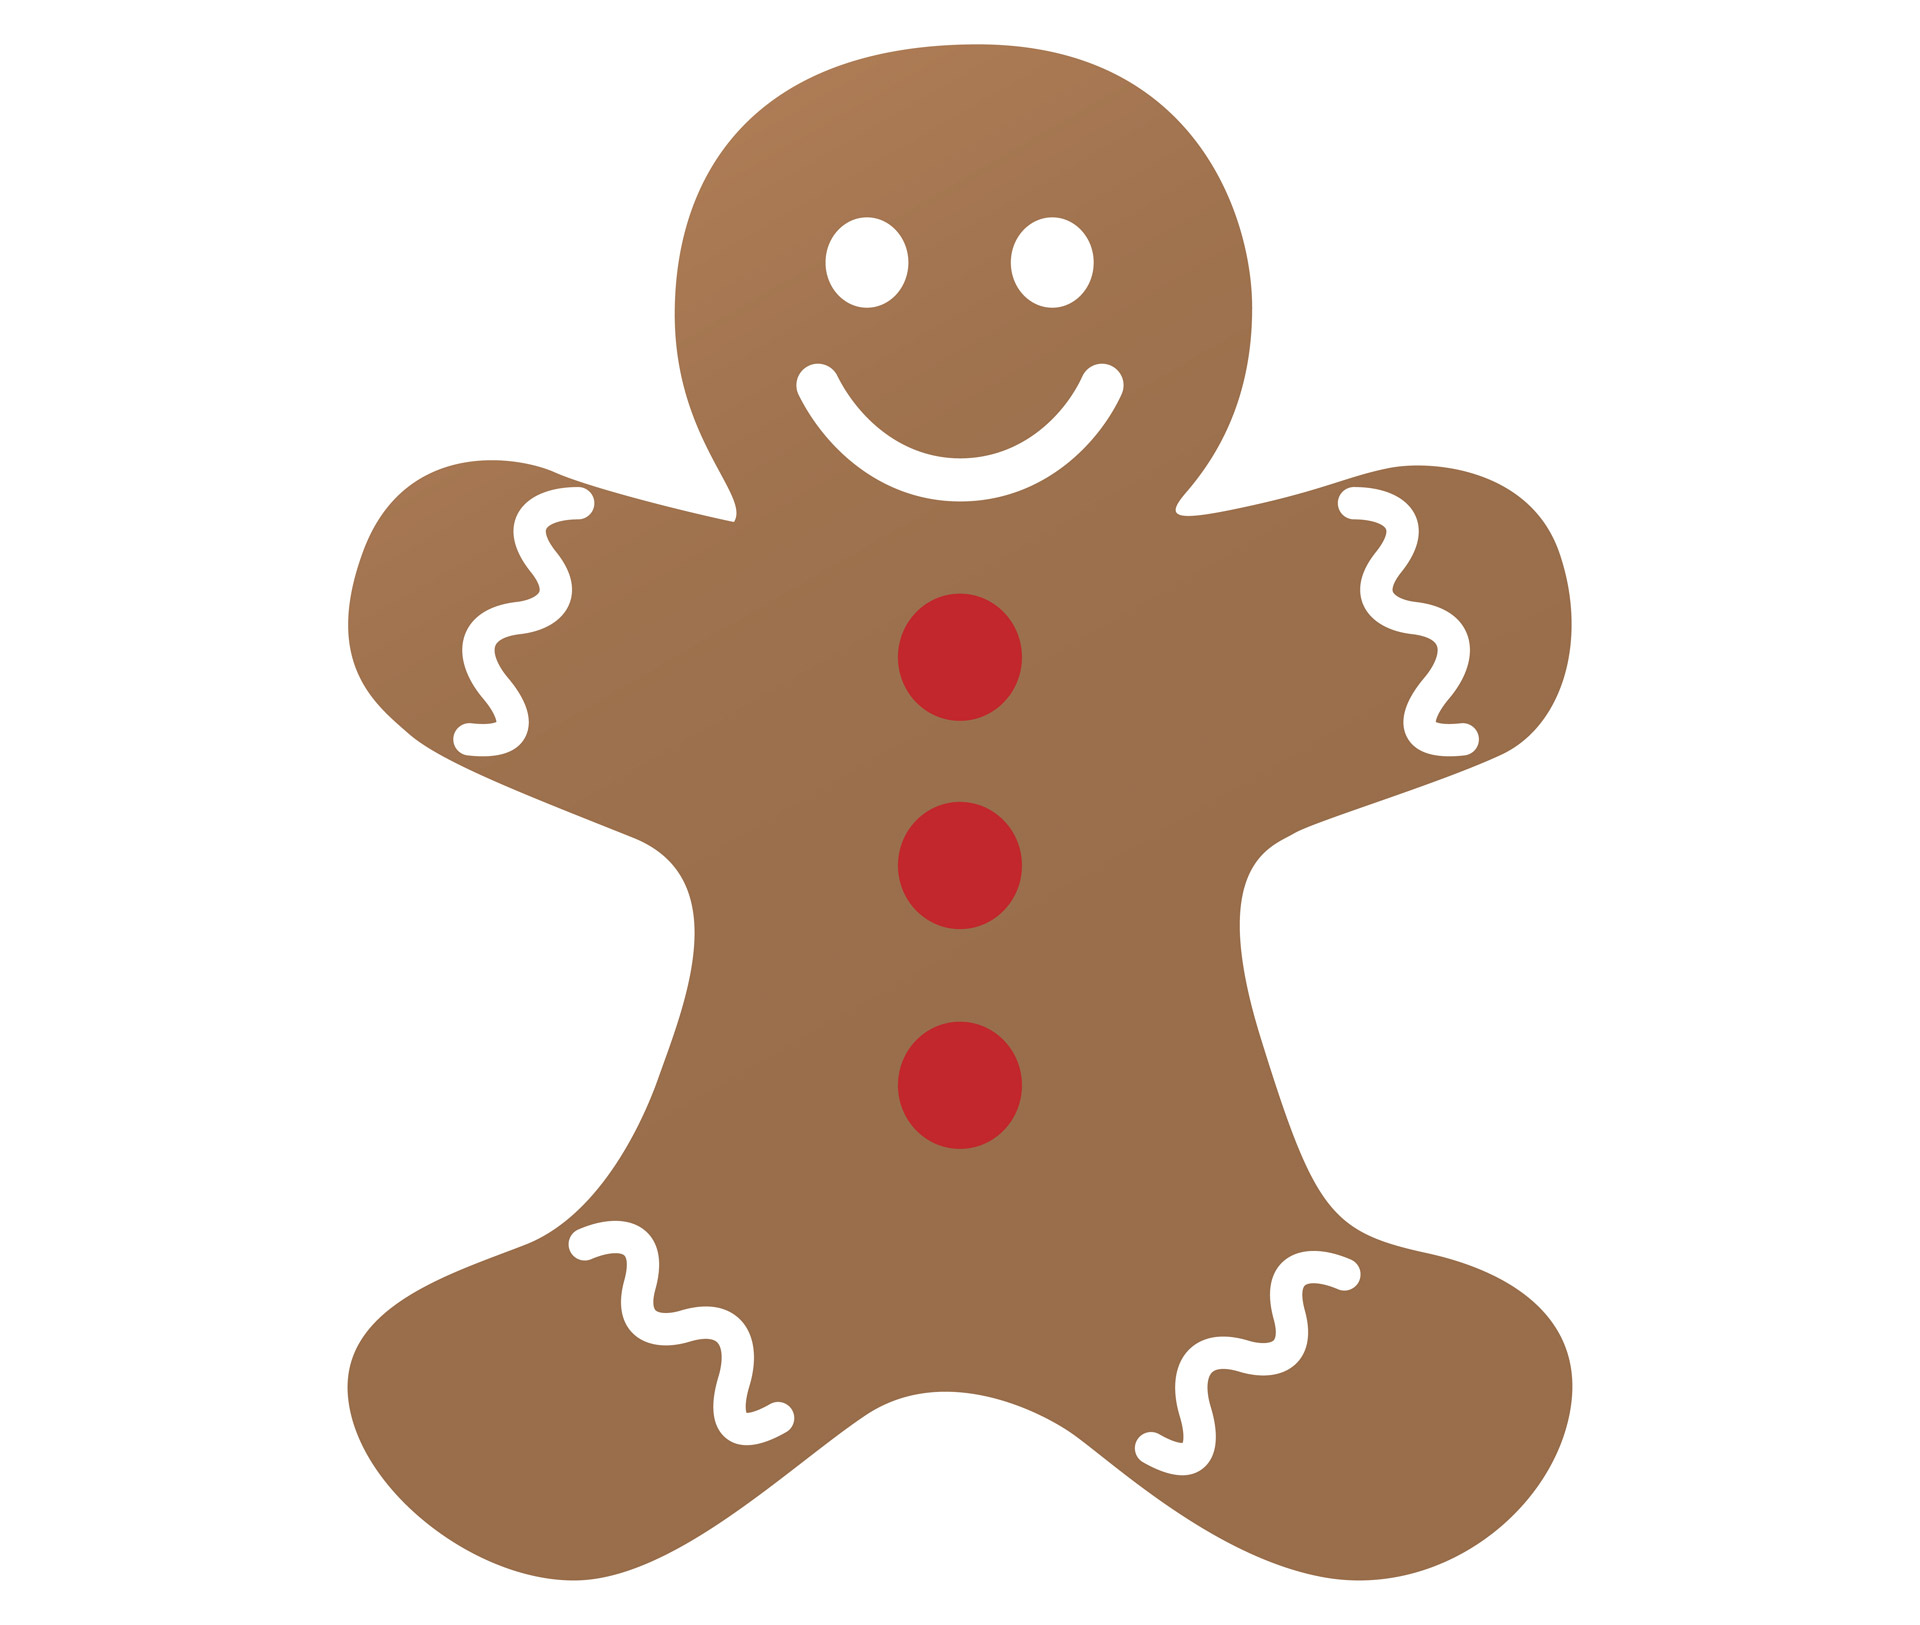 Gingerbread Man Clipart Free Stock Photo-Gingerbread man clipart free stock photo public domain pictures-16